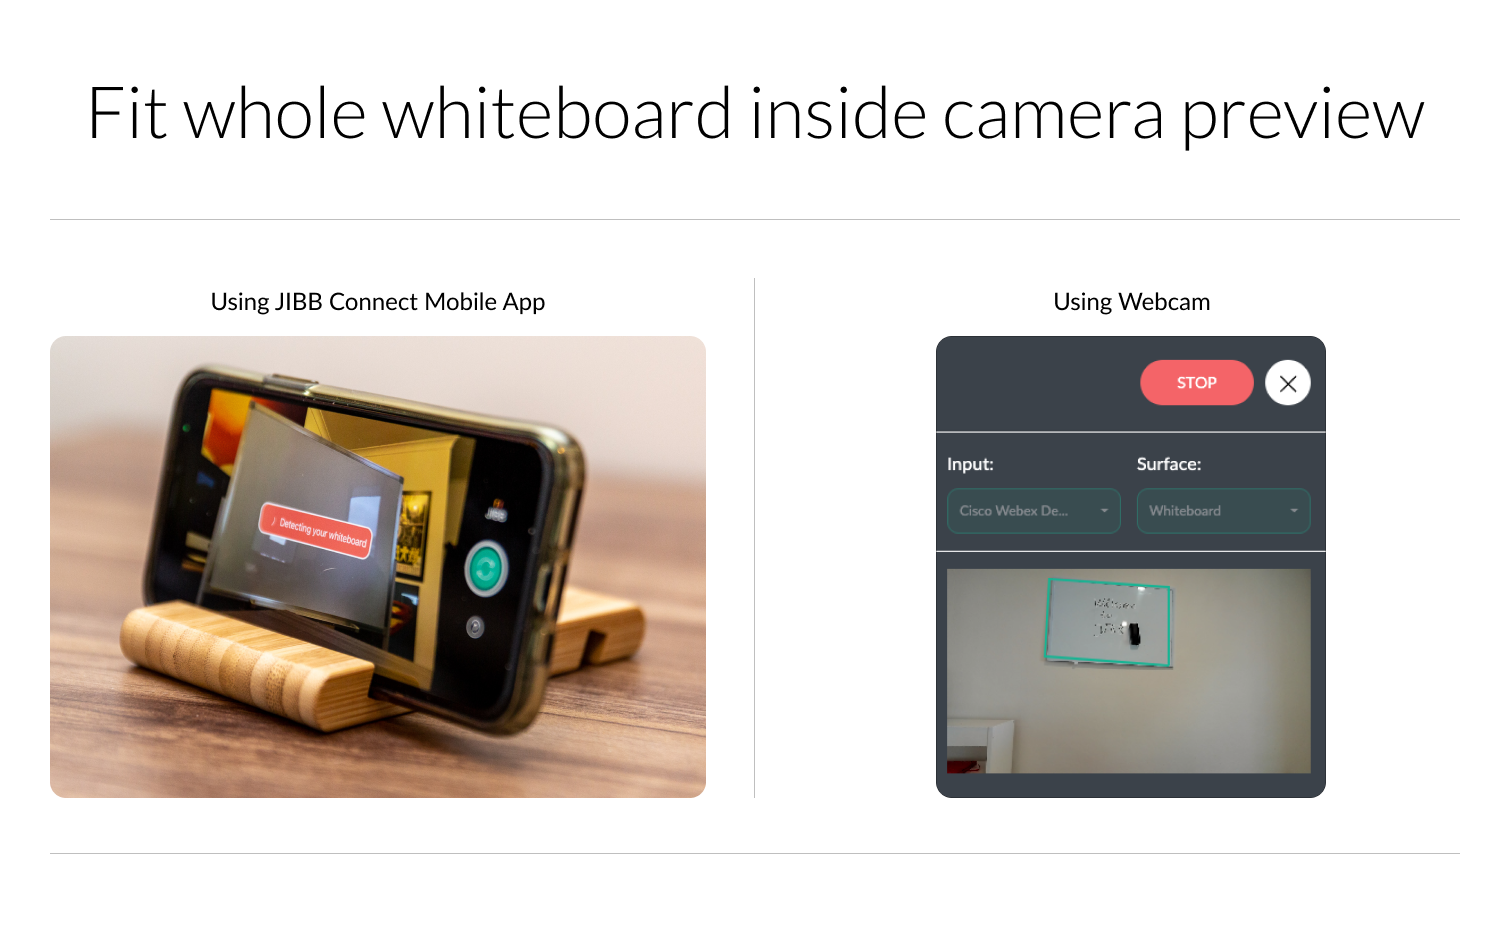 Whiteboard camera preview